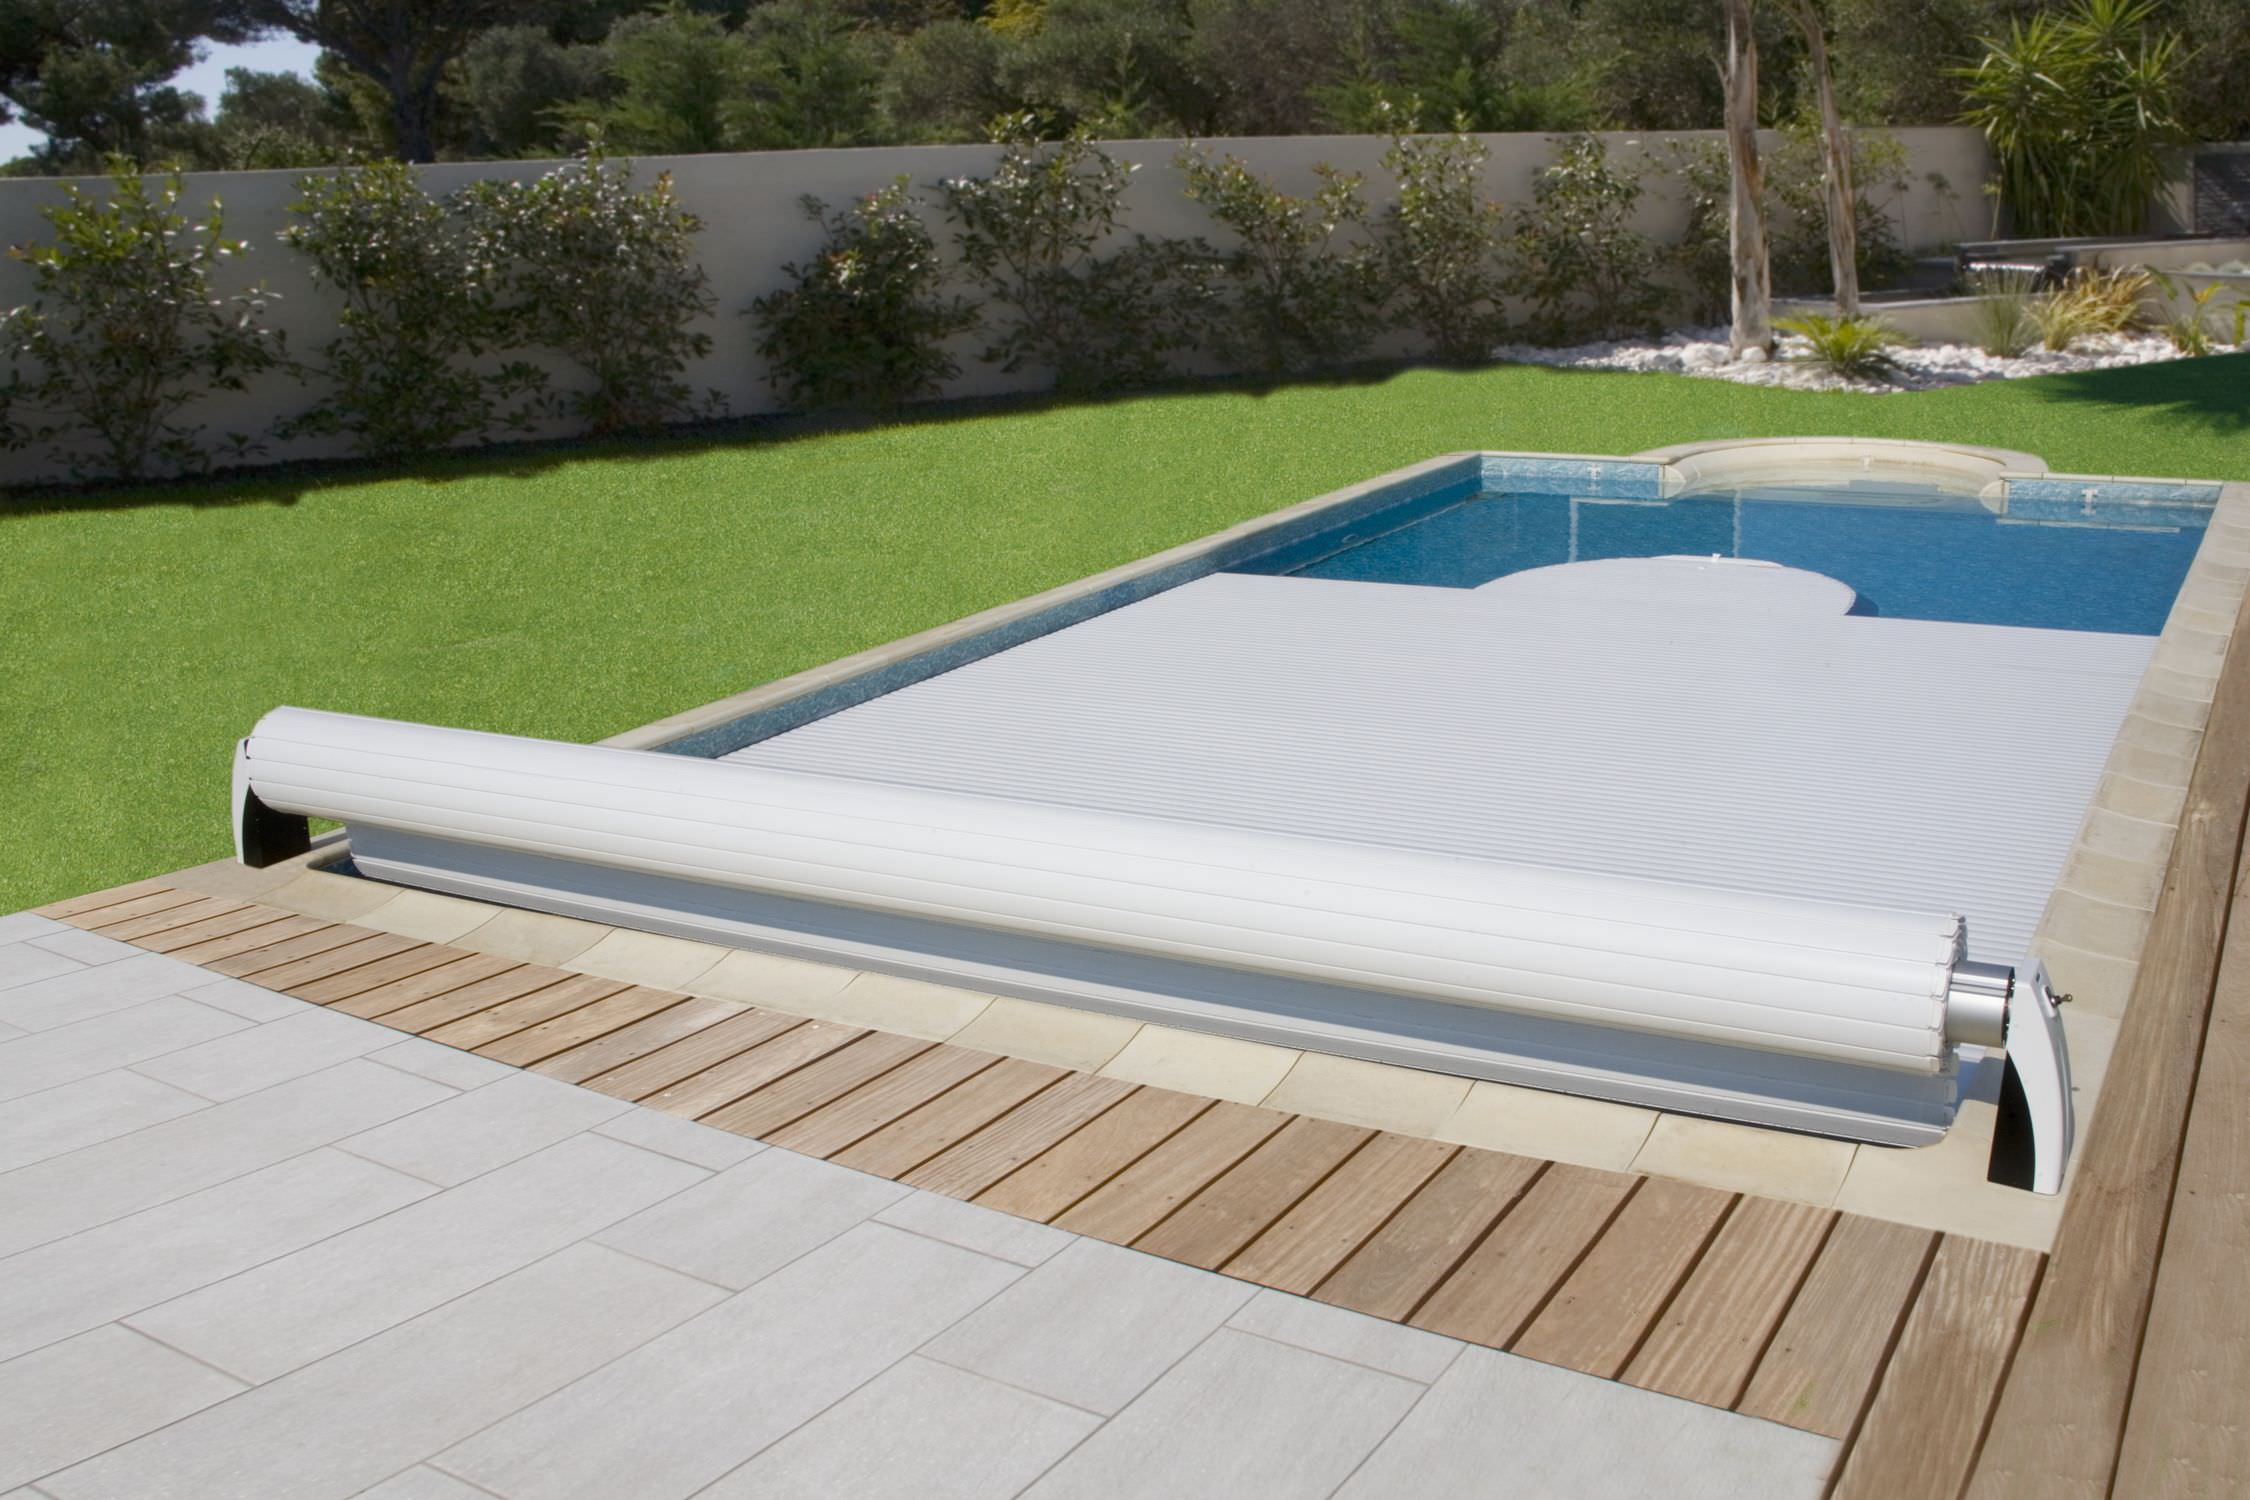 above ground pool covers. Automatic Swimming Pool Cover / Security Slatted For Above-ground Pools Above Ground Covers B